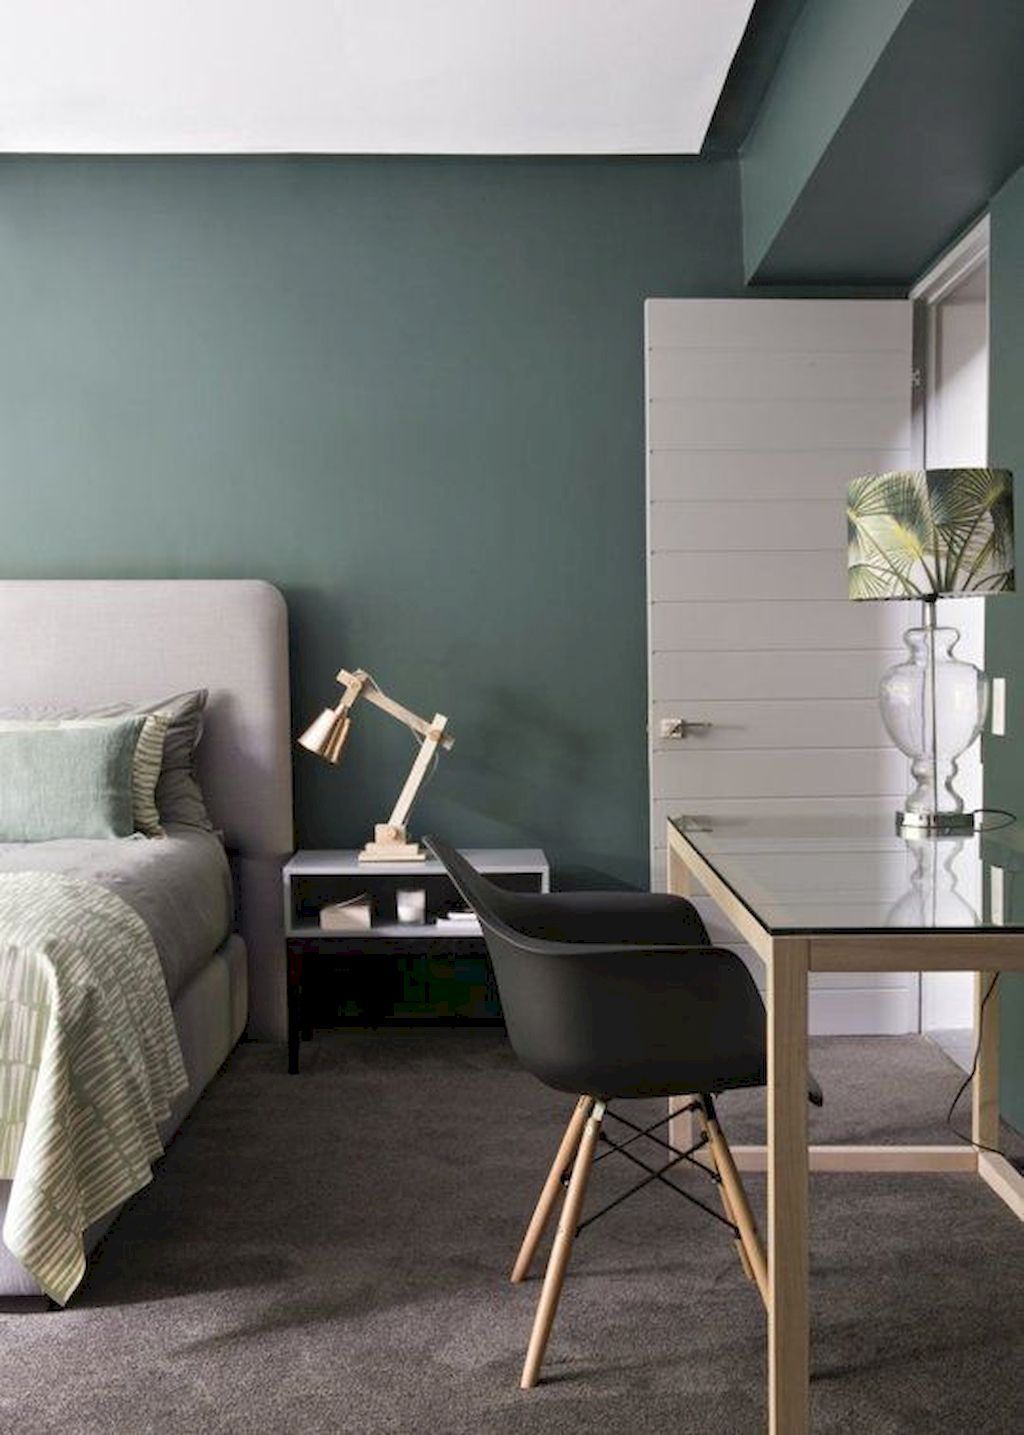 https://elonahome.com/wp-content/uploads/2018/12/Bedroom-Color-Trend-with-Bold-Colors-and-Brave-Statements-Part-30.jpg